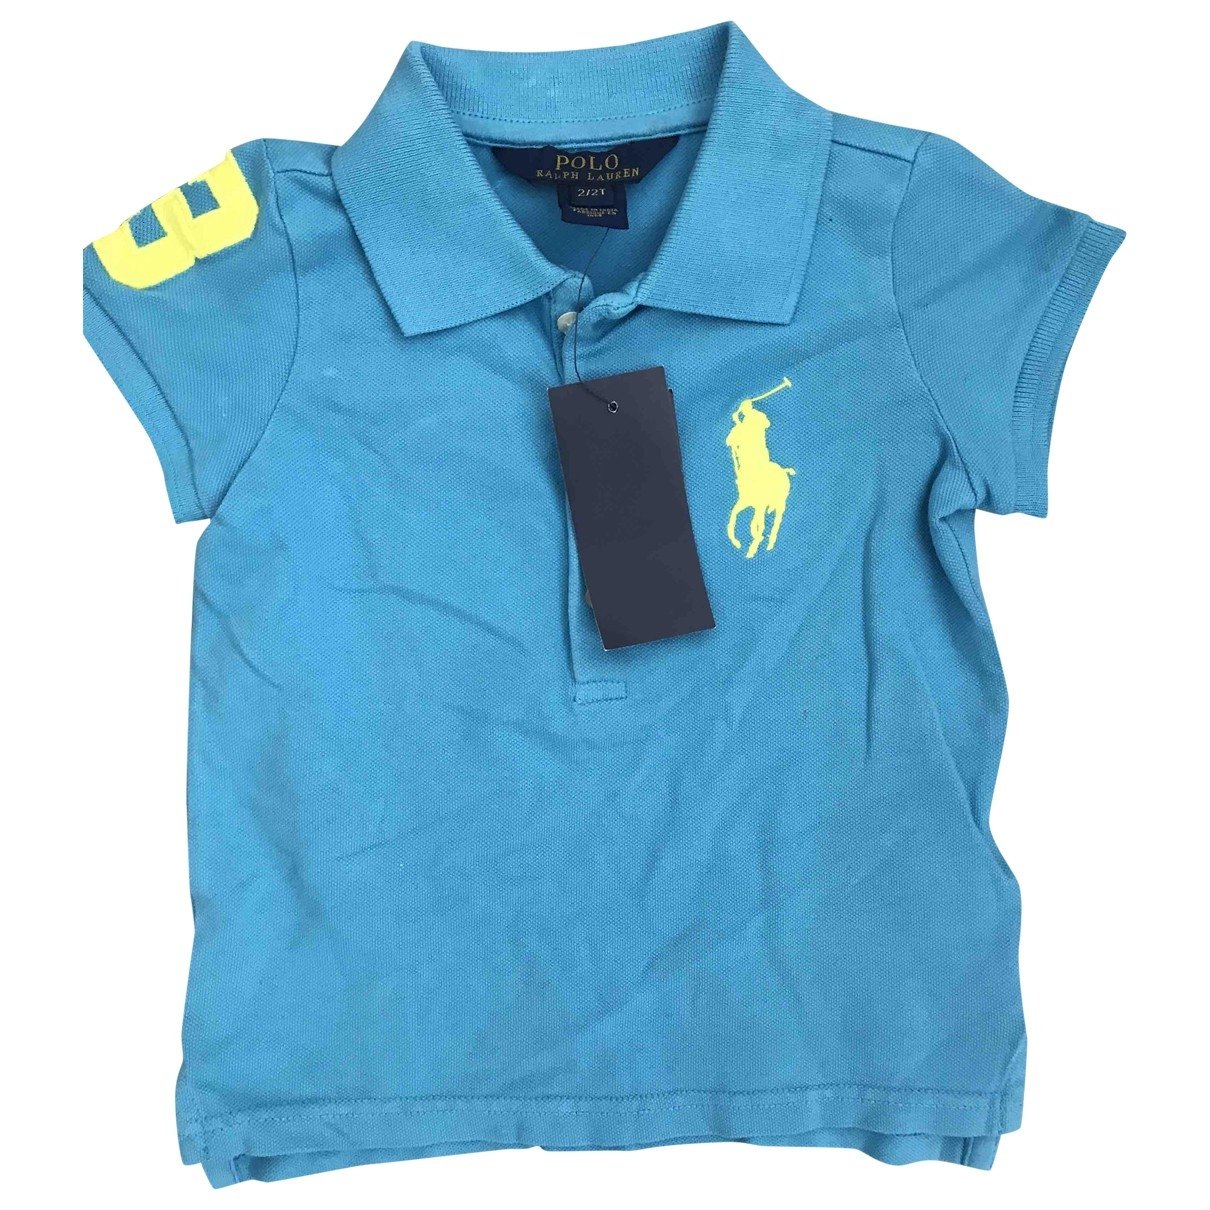 Polo Ralph Lauren \N Blue Cotton  top for Kids 2 years - until 34 inches UK